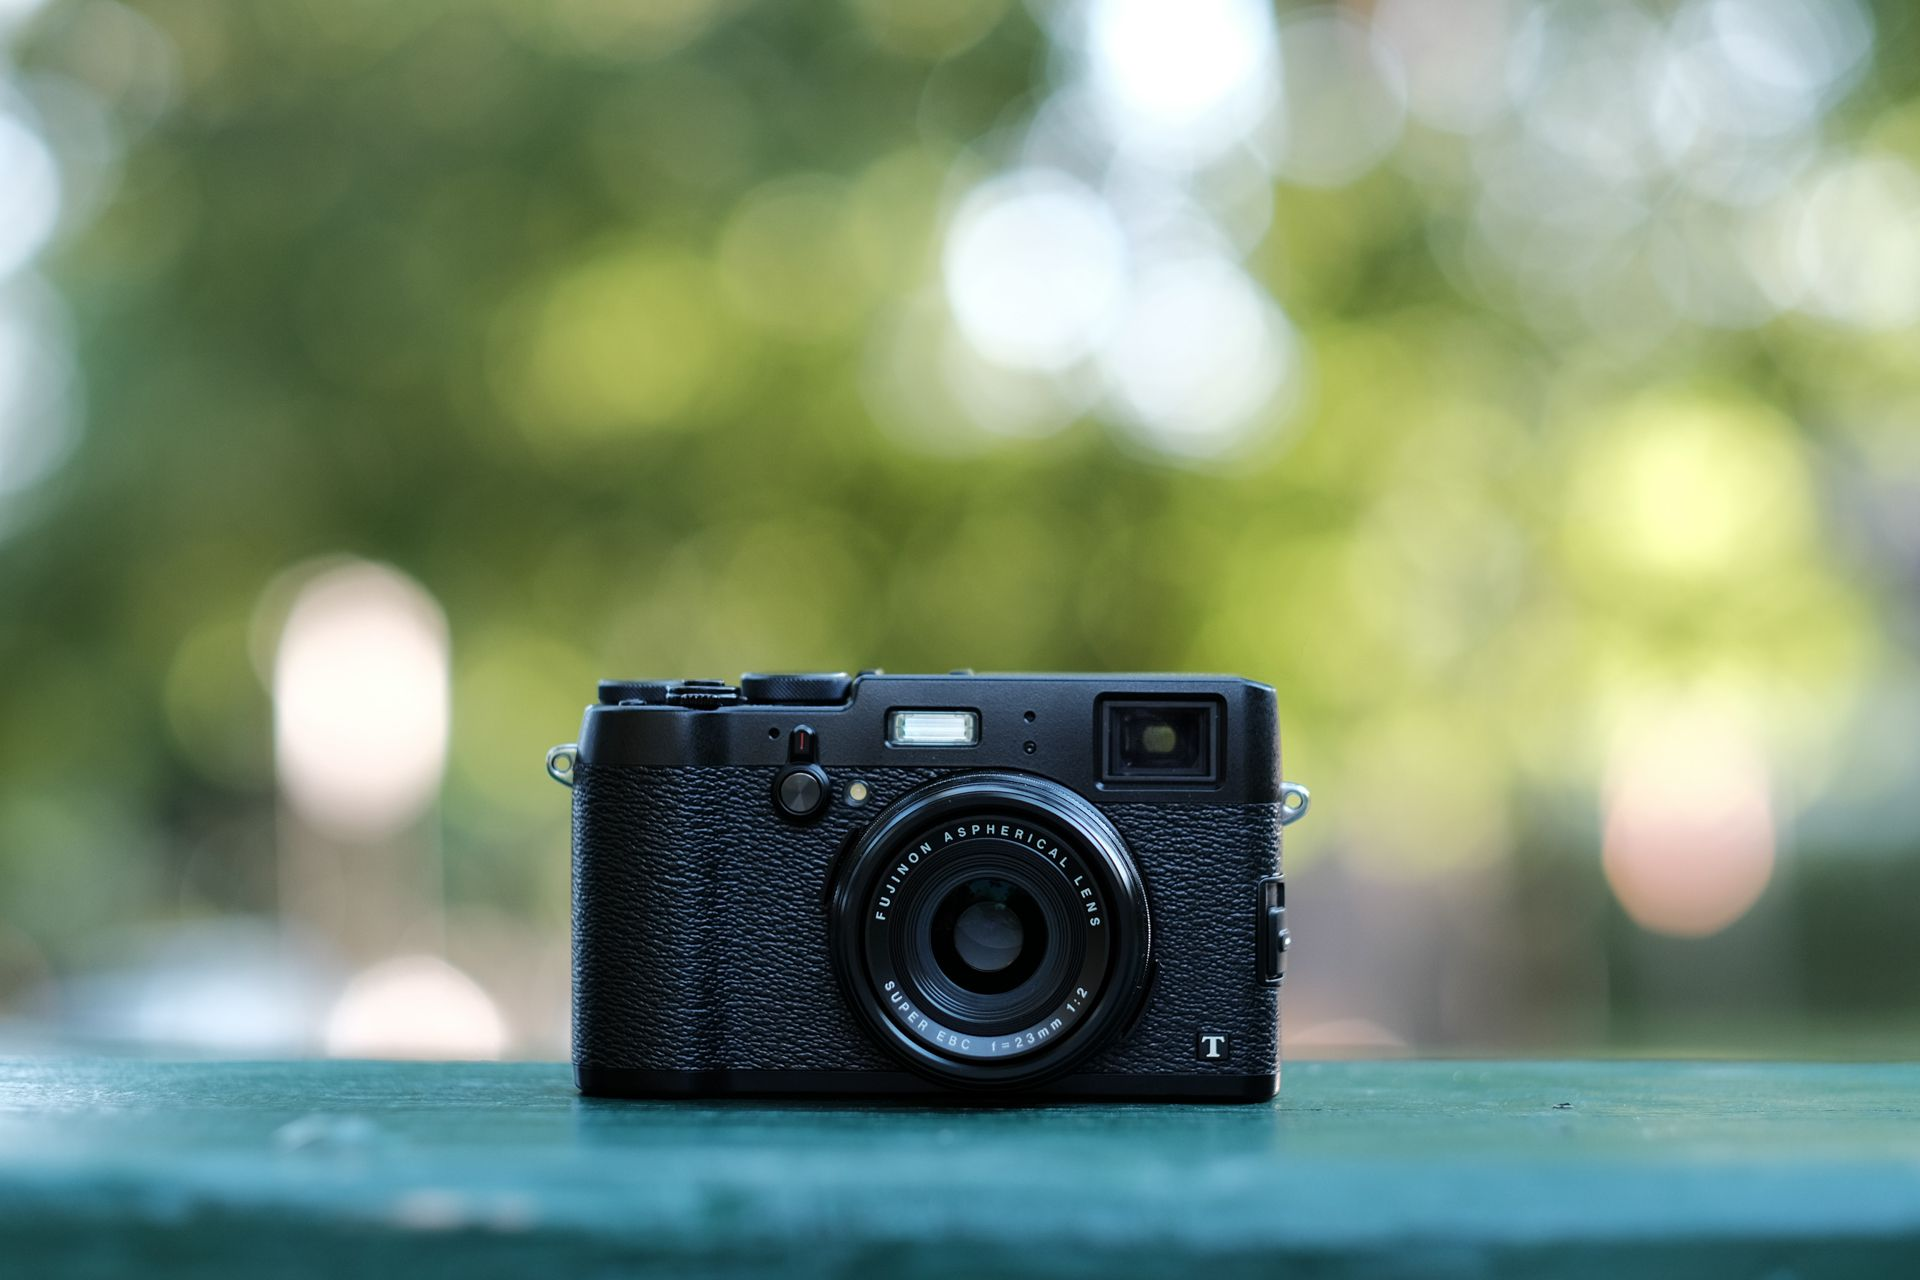 The Fuji X100T — Tools and Toys